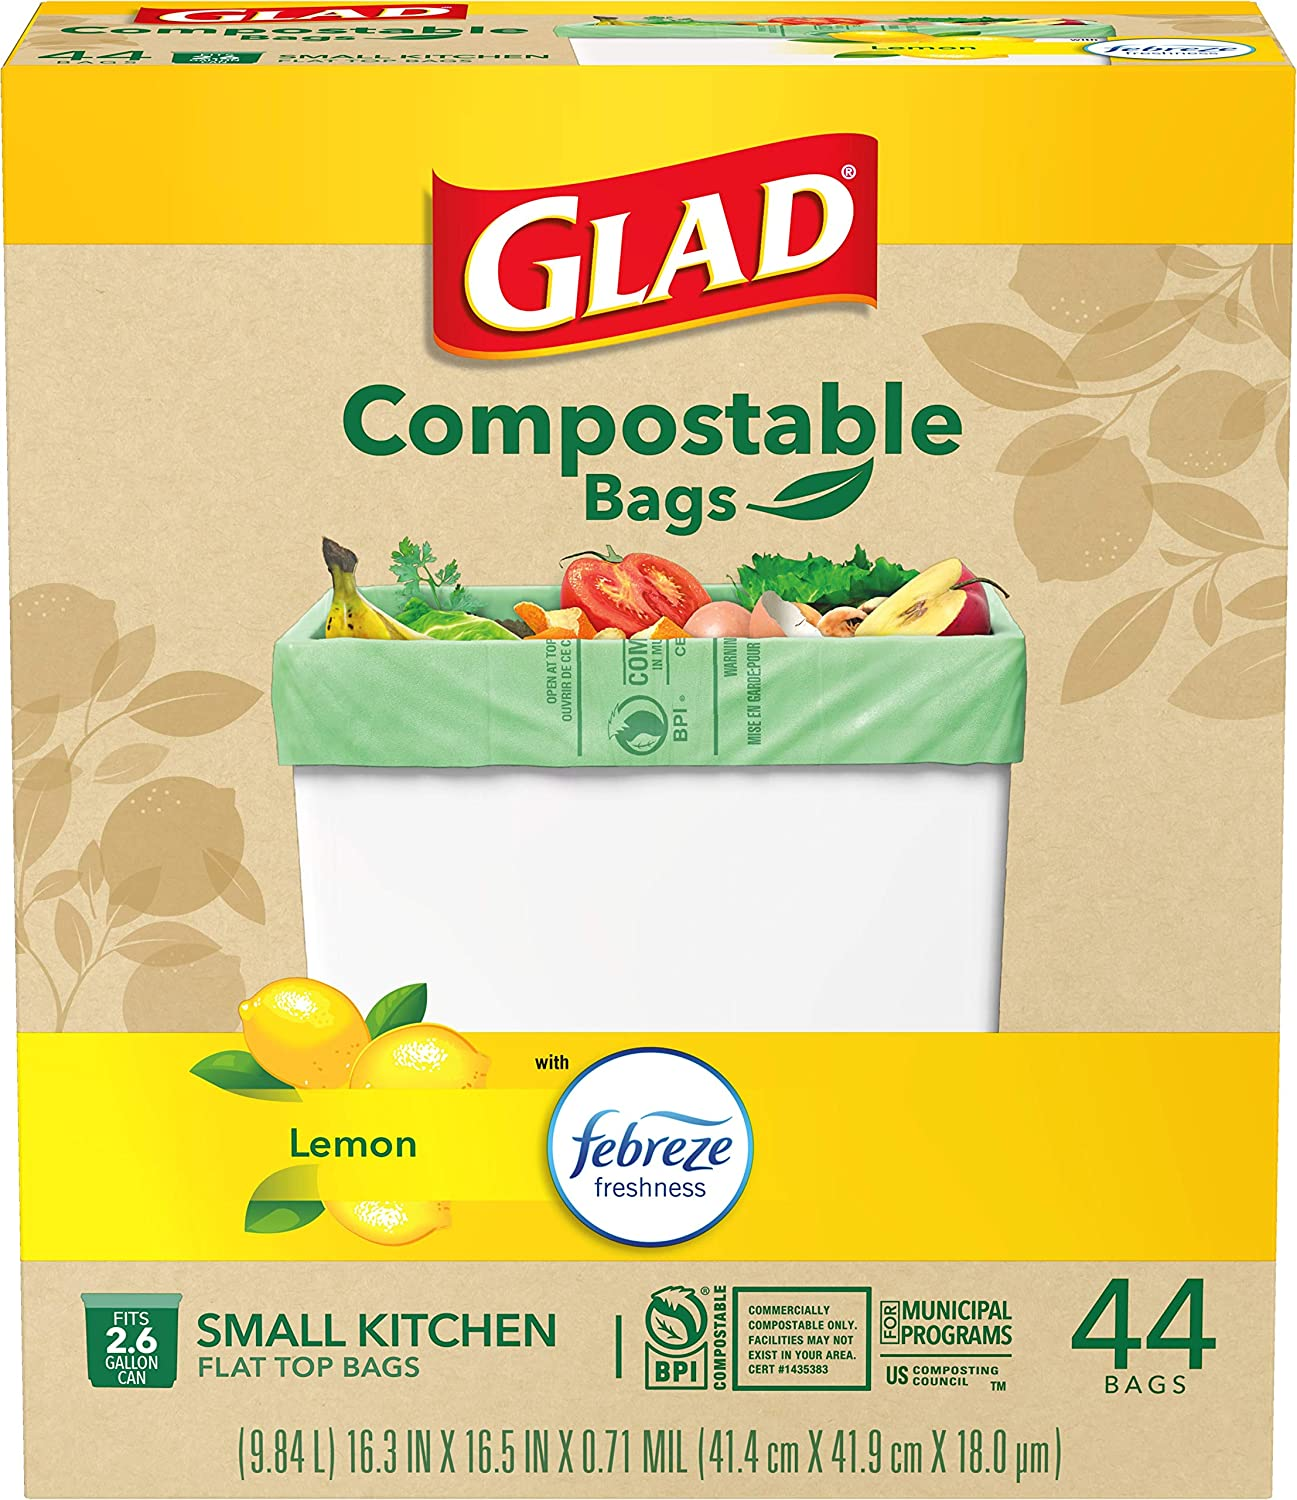 Glad Kitchen Compost Bags 2.6 Gallon 100% Compostable Bag, Febreze Lemon, 44 Count (Package May Vary)